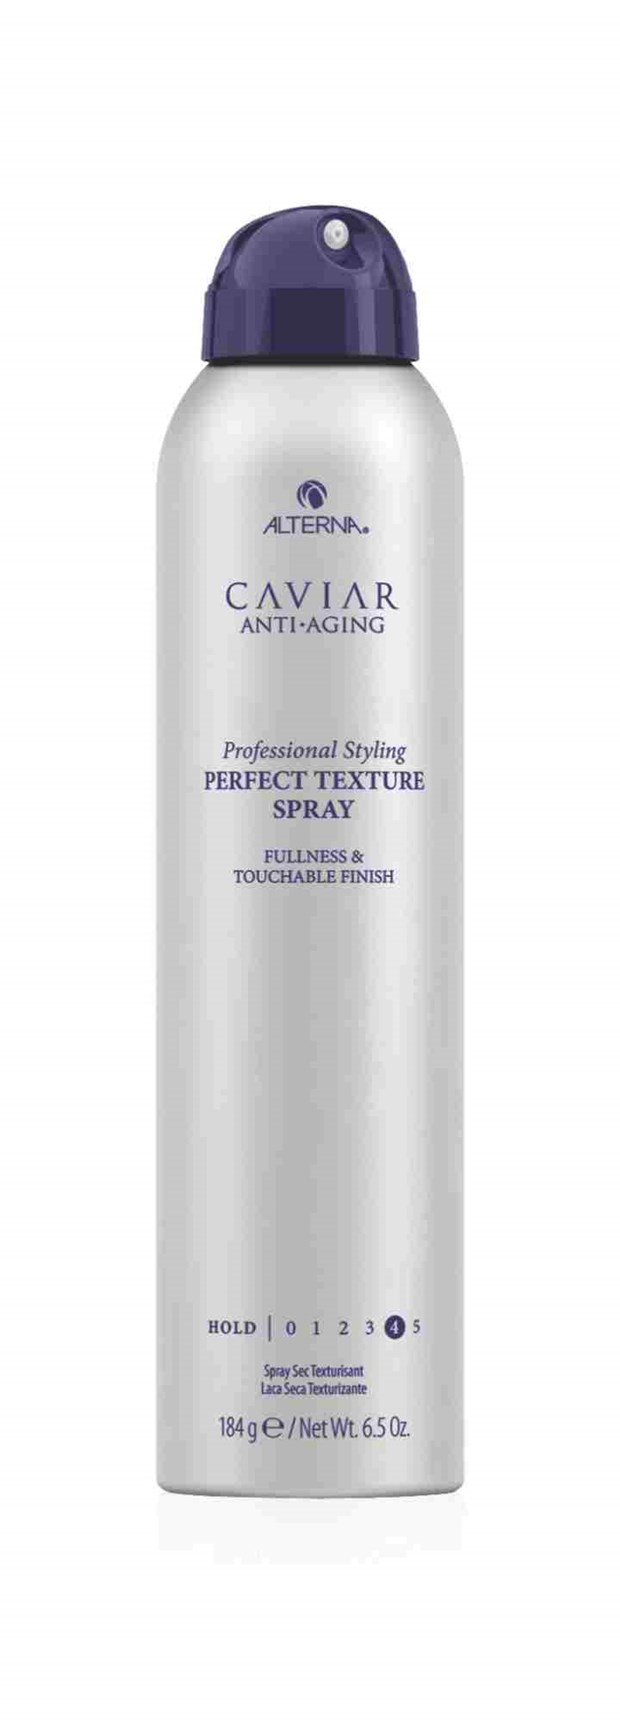 Caviar Anti-Aging Styling Perfect Texture Spray